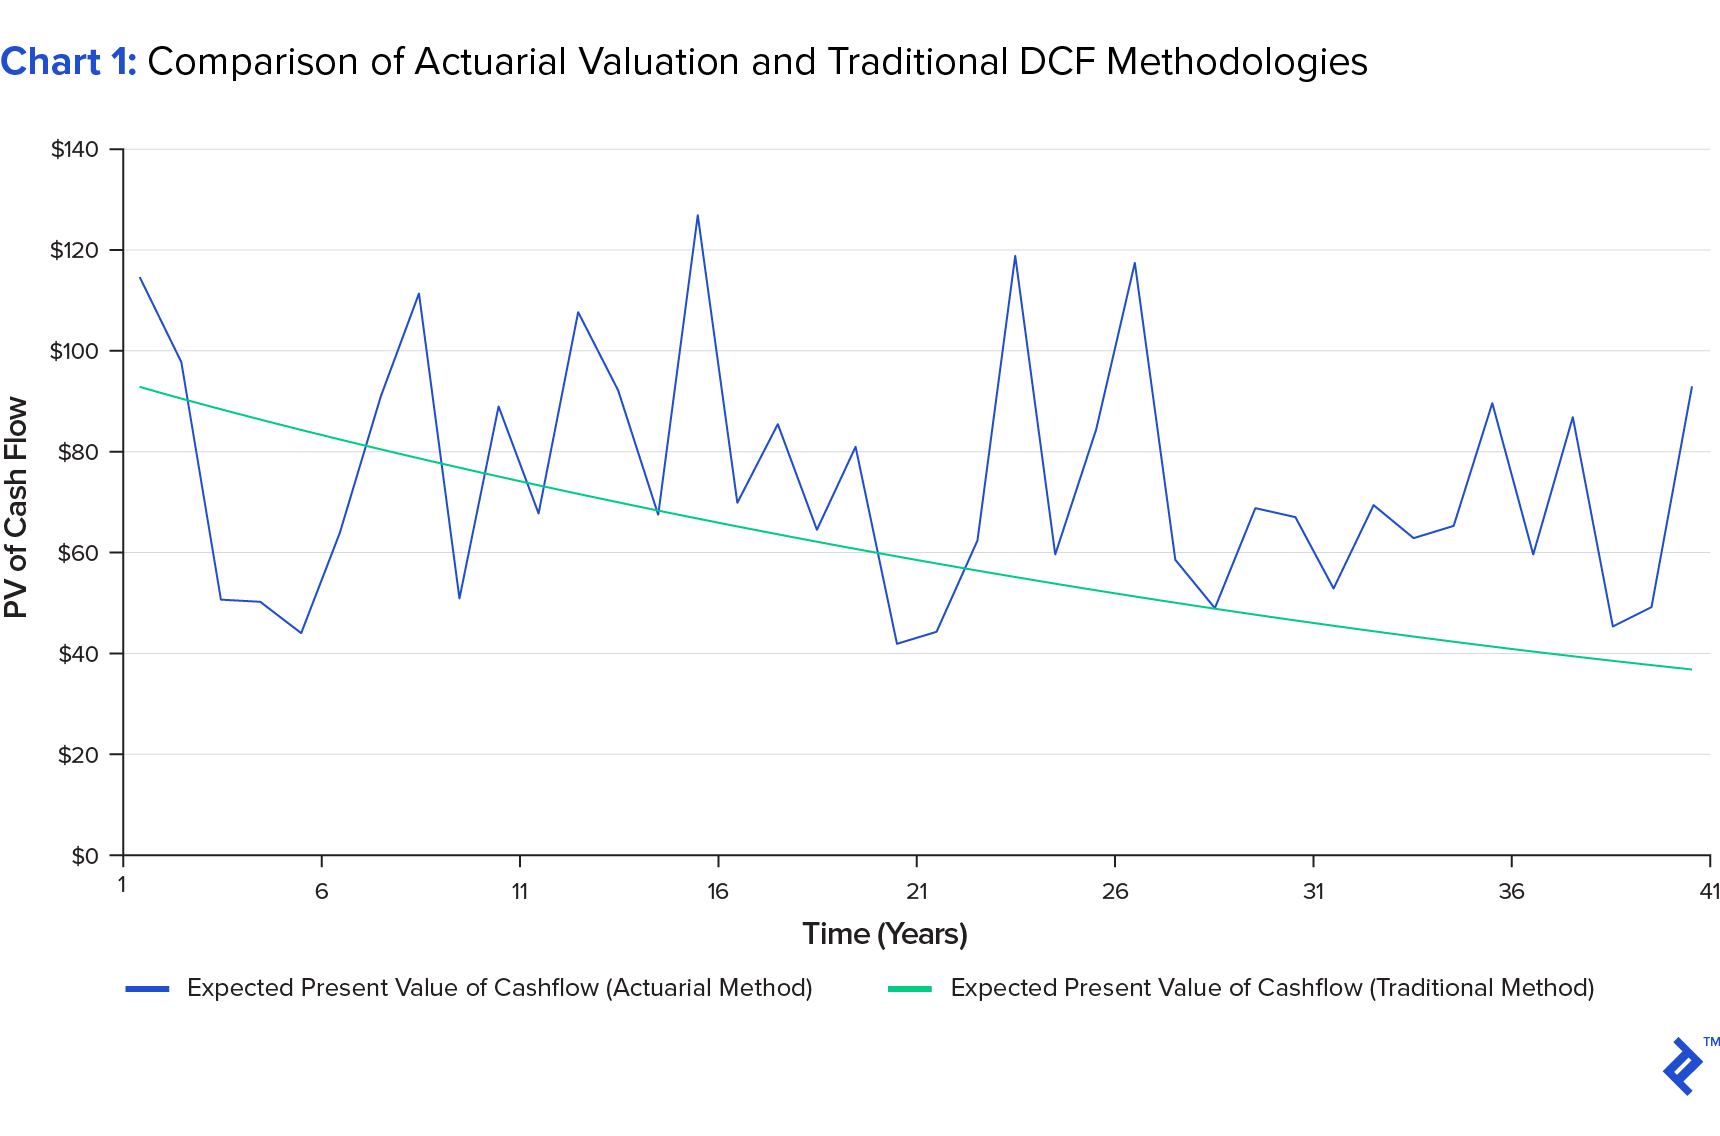 chart showing comparison of actuarial valuation and traditional dcf methodologies